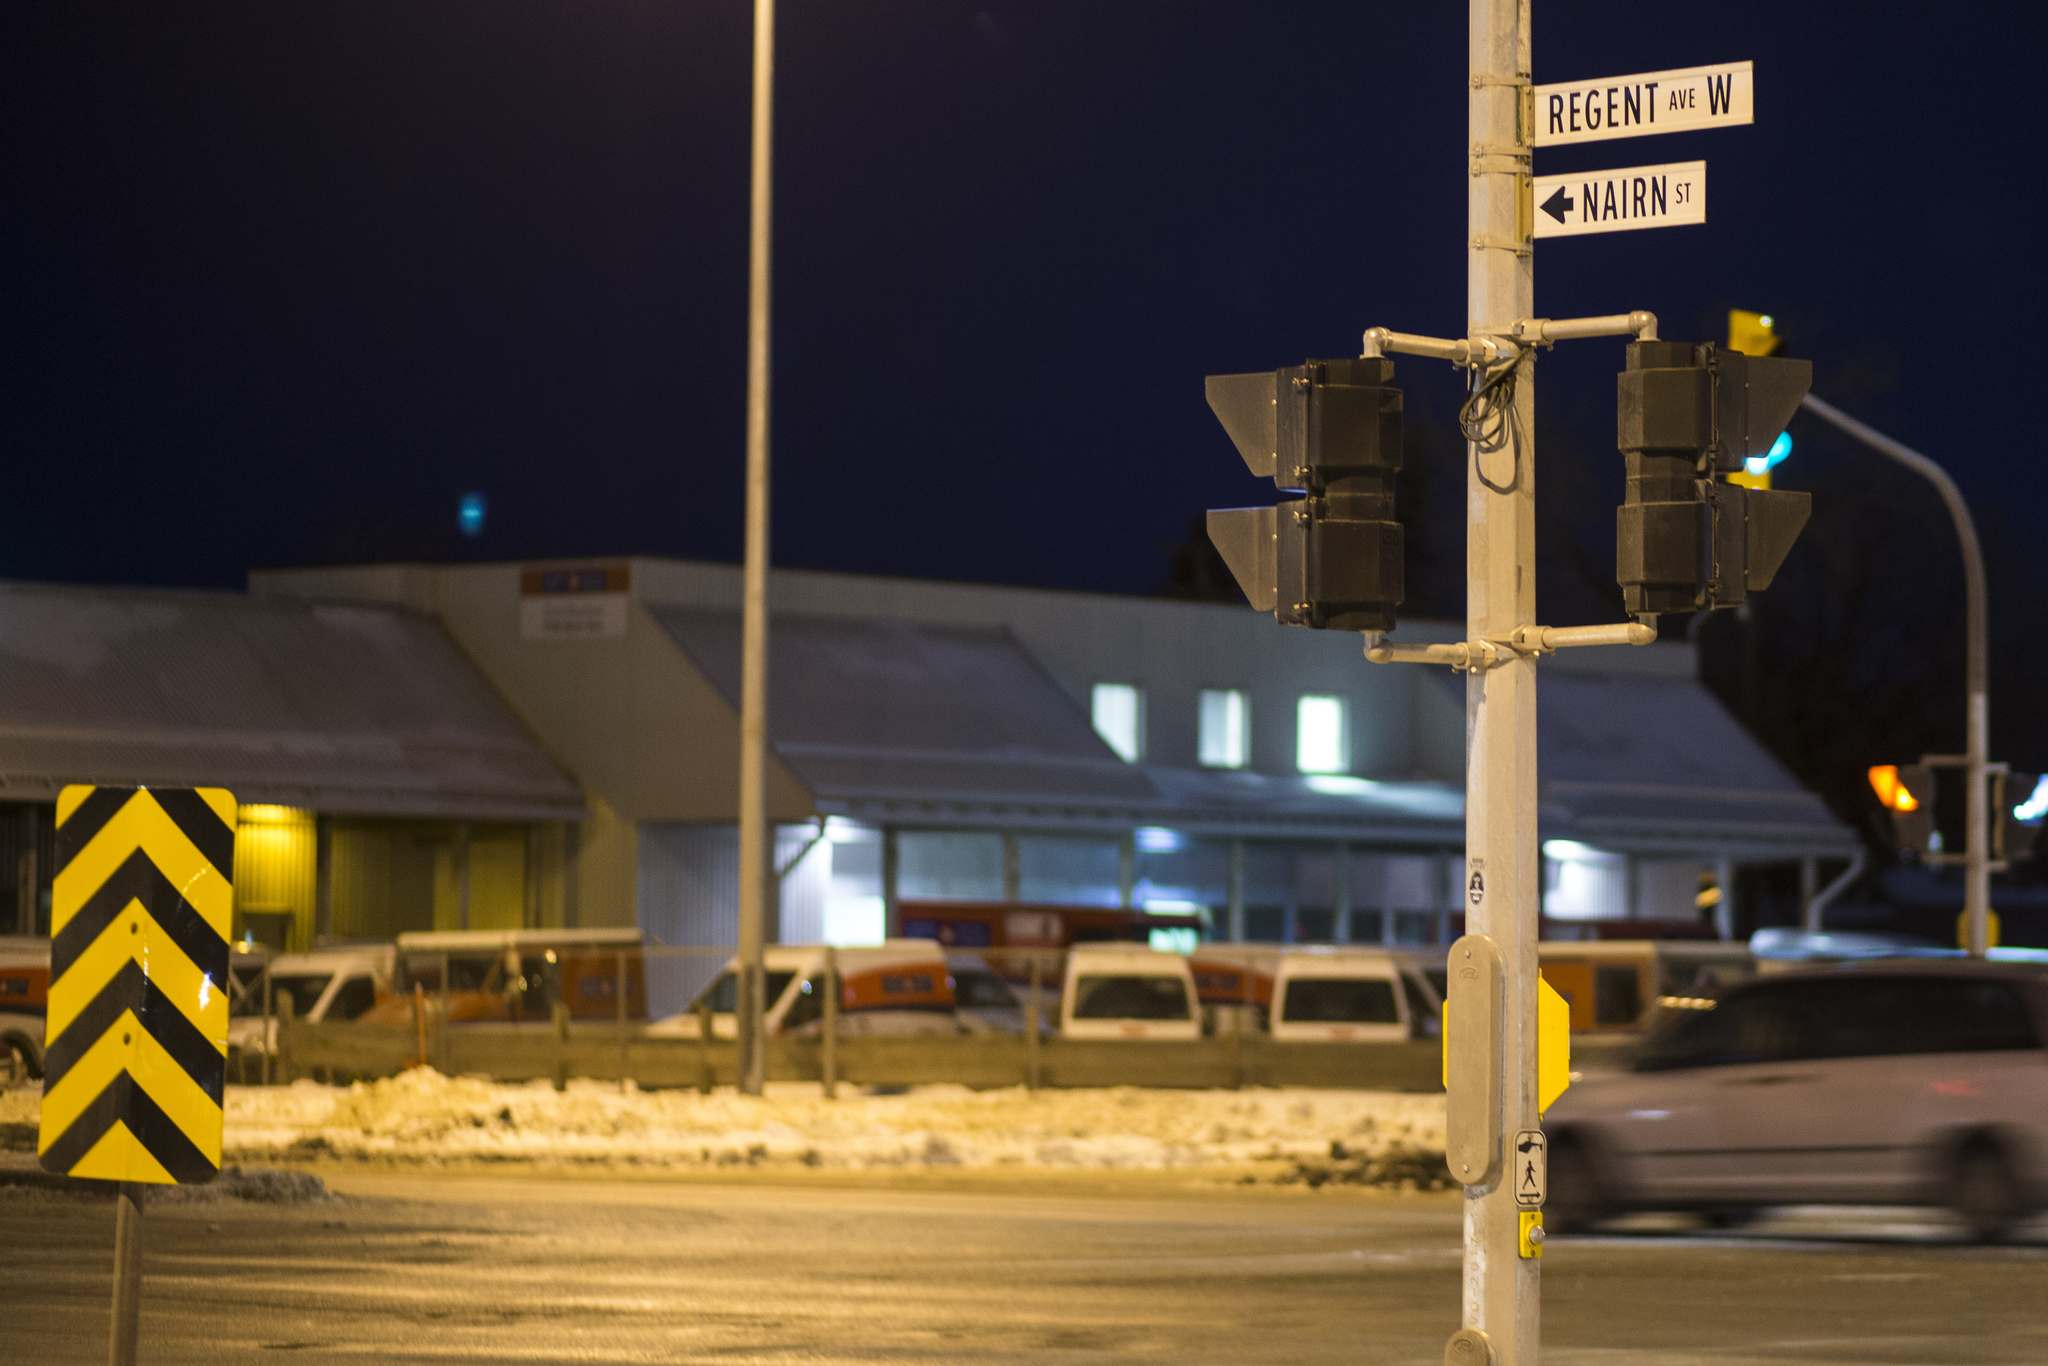 Police fired at a vehicle after it rammed through a roadblock at Panet Road and Nairn Avenue on Wednesday. (Mikaela MacKenzie / Winnipeg Free Press)</p>